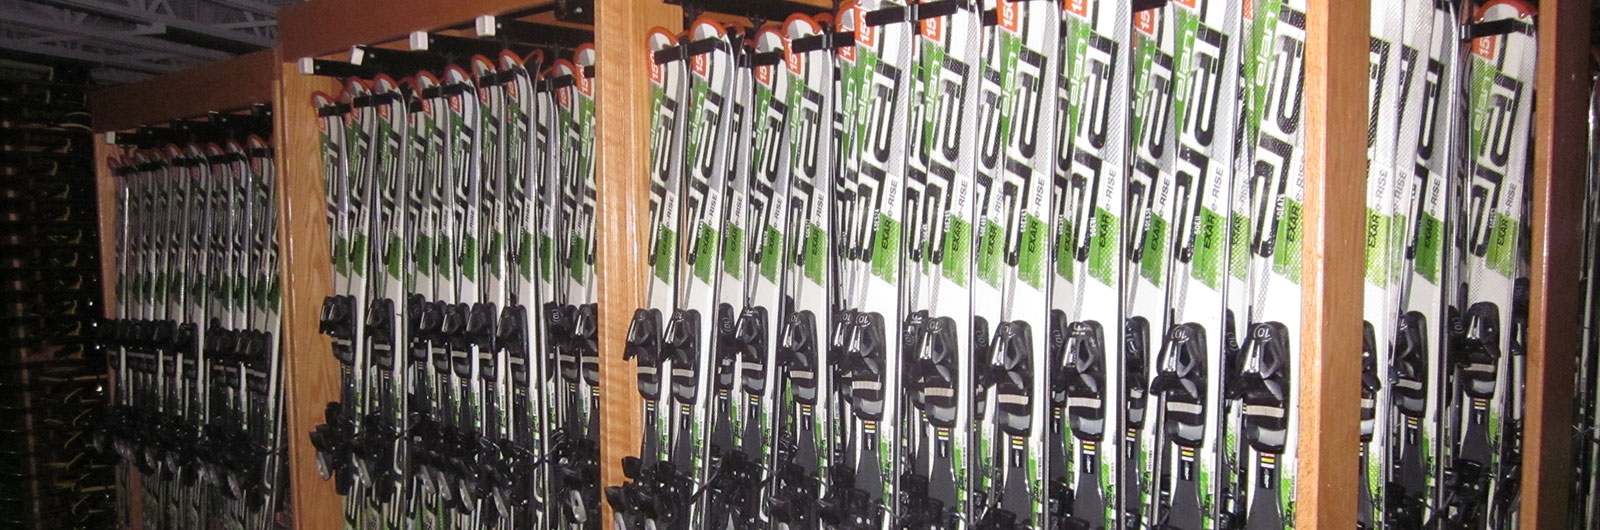 rack of Elan rental skis